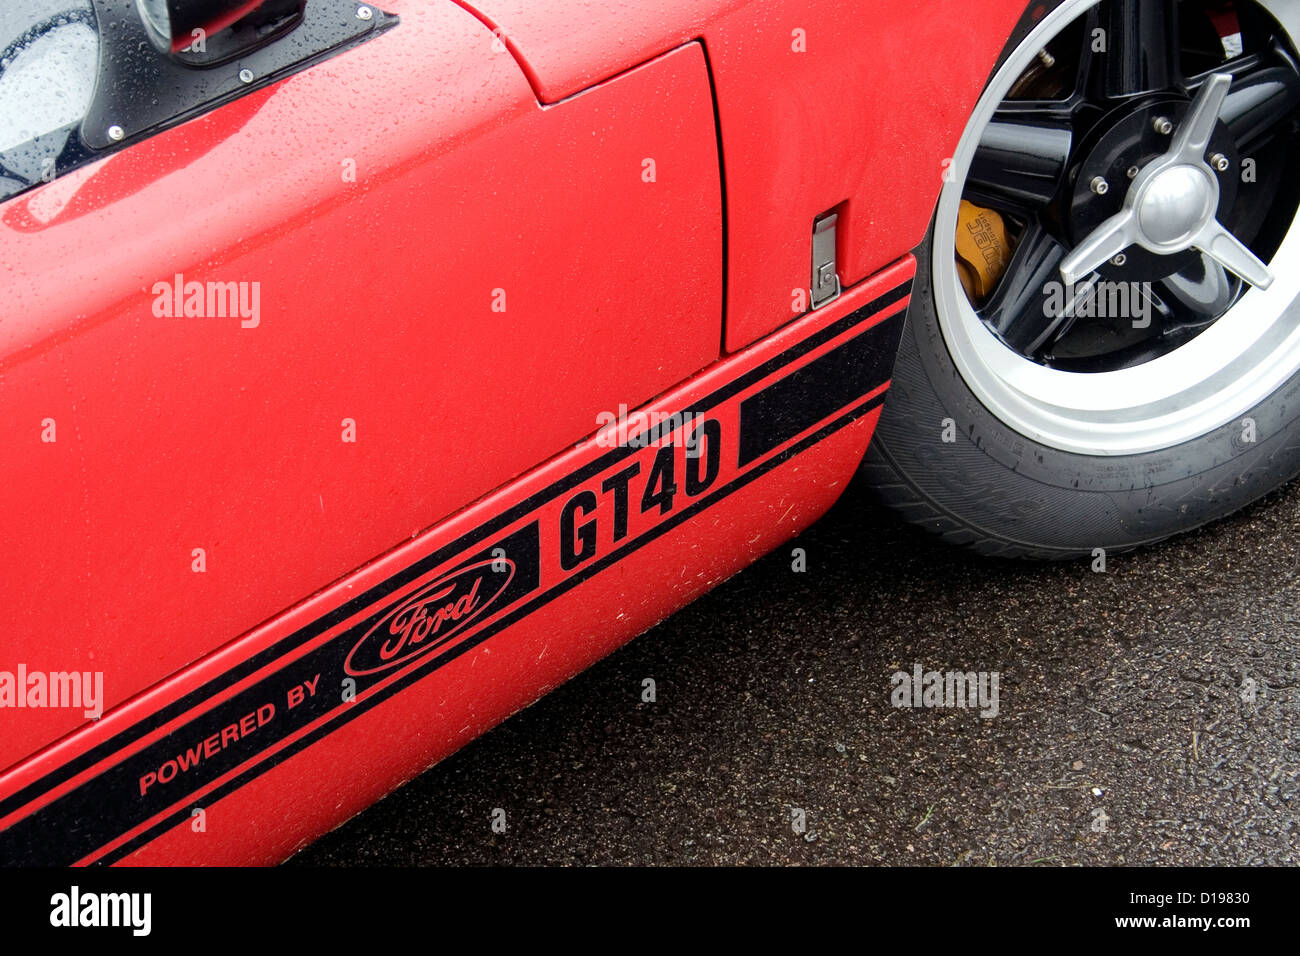 The Front Wheel And Badge Of A Red And Black Ford Gt Supercar Stock